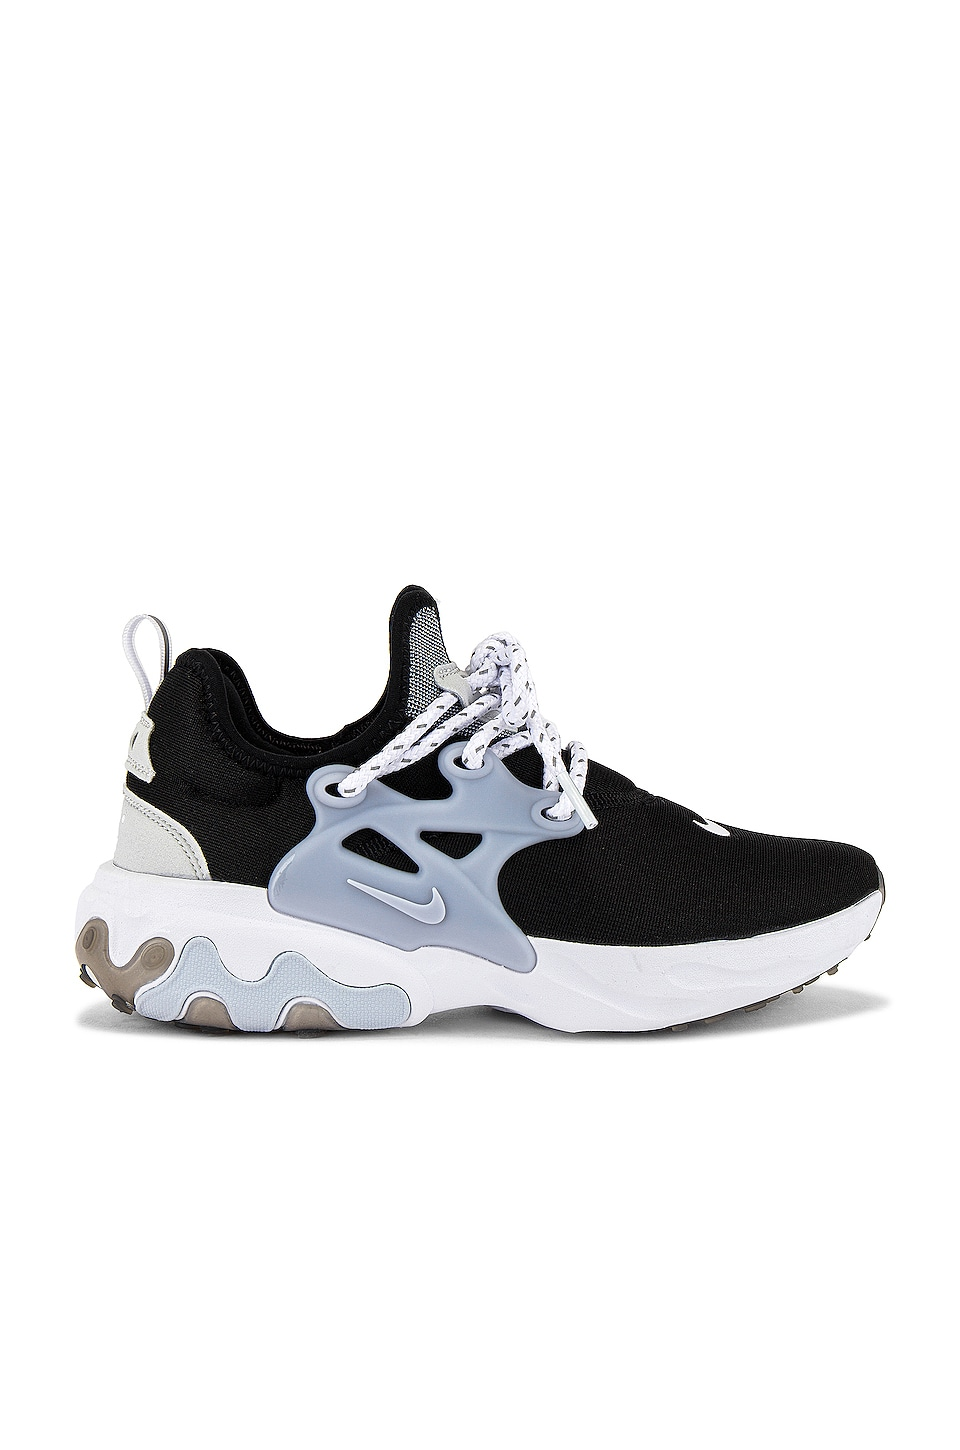 Nike React Presto Sneaker in Black, Sky Grey & Photon Dust